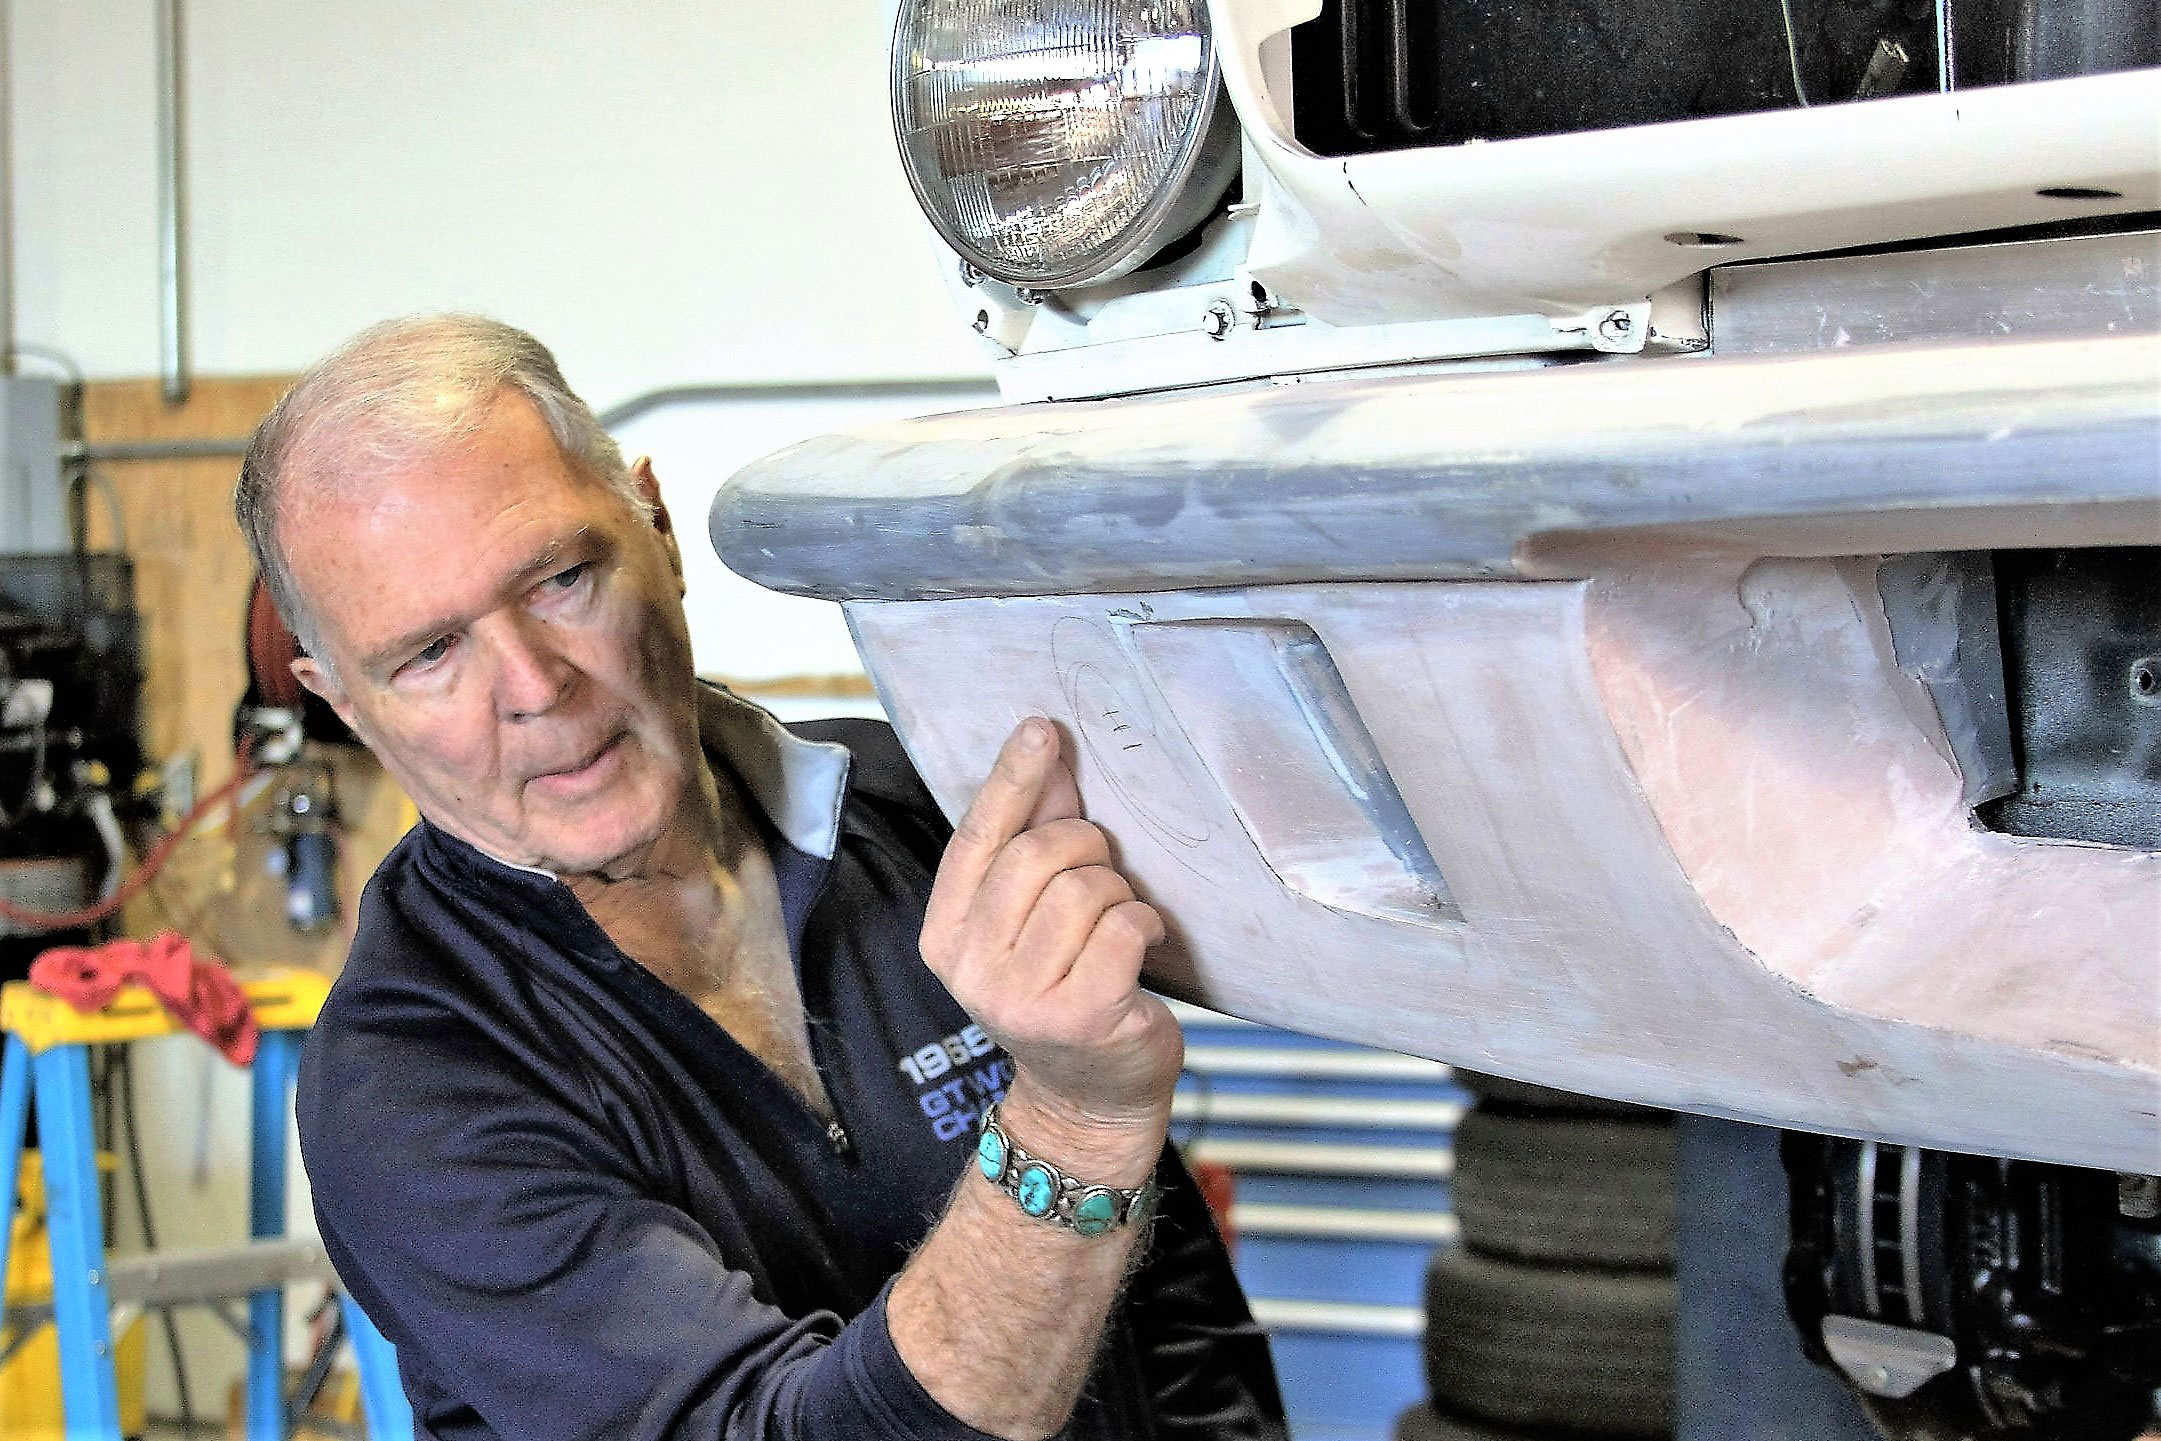 Pete Brock works on an under-construction front valance, pointing out some changes he'd like to make.